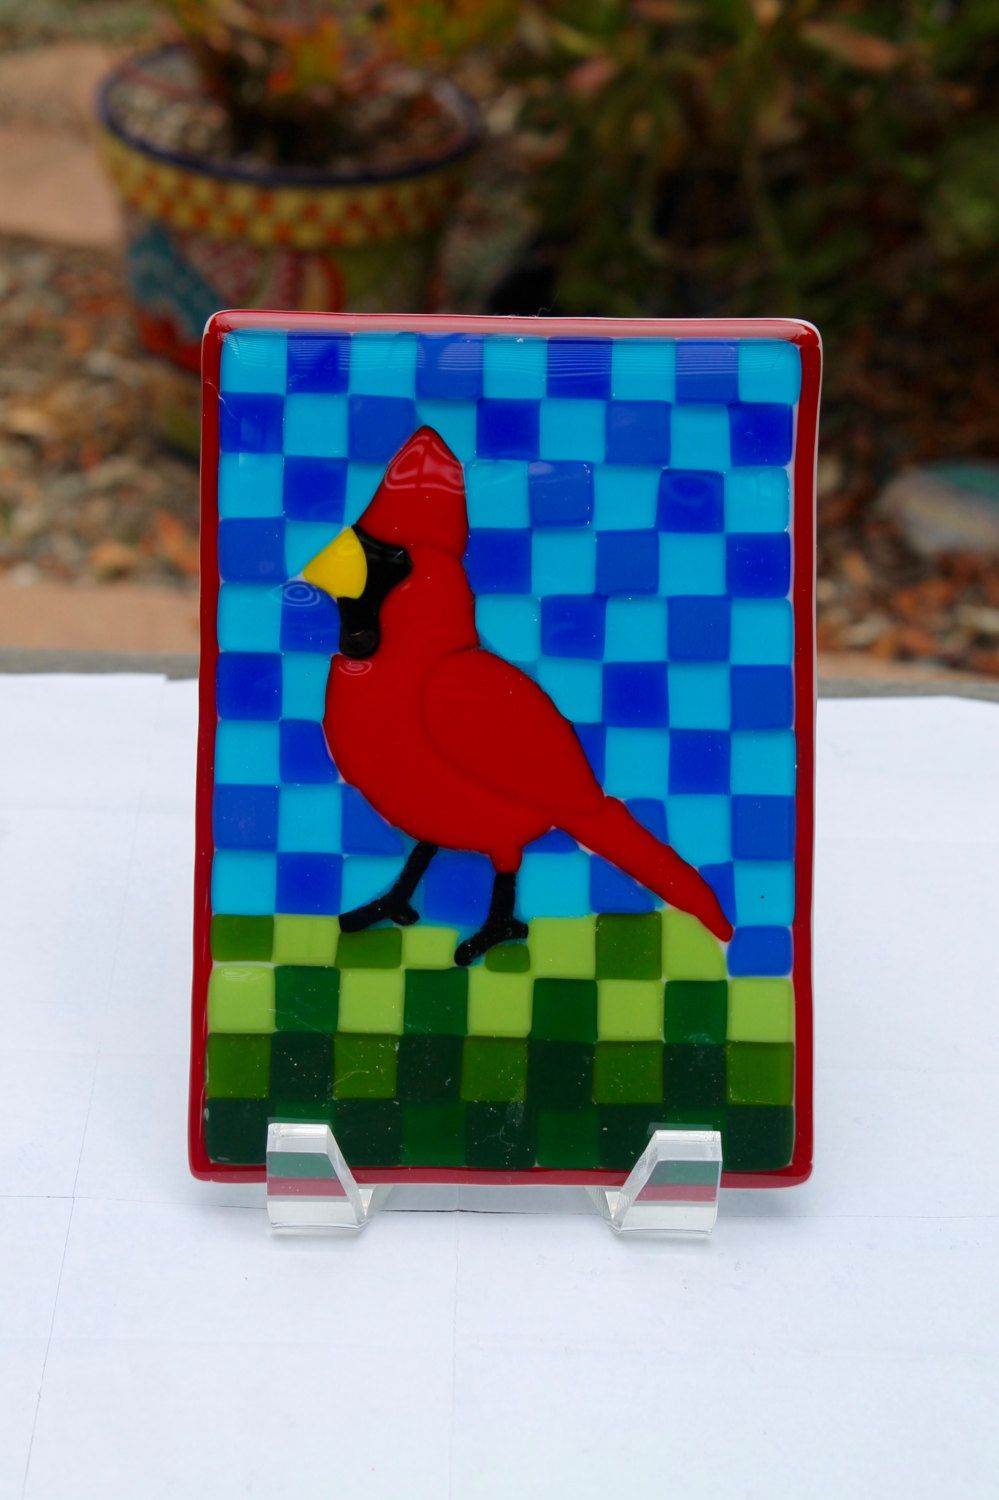 home decor-decorative tiles-fused glass-mosaic design-custom-tiles